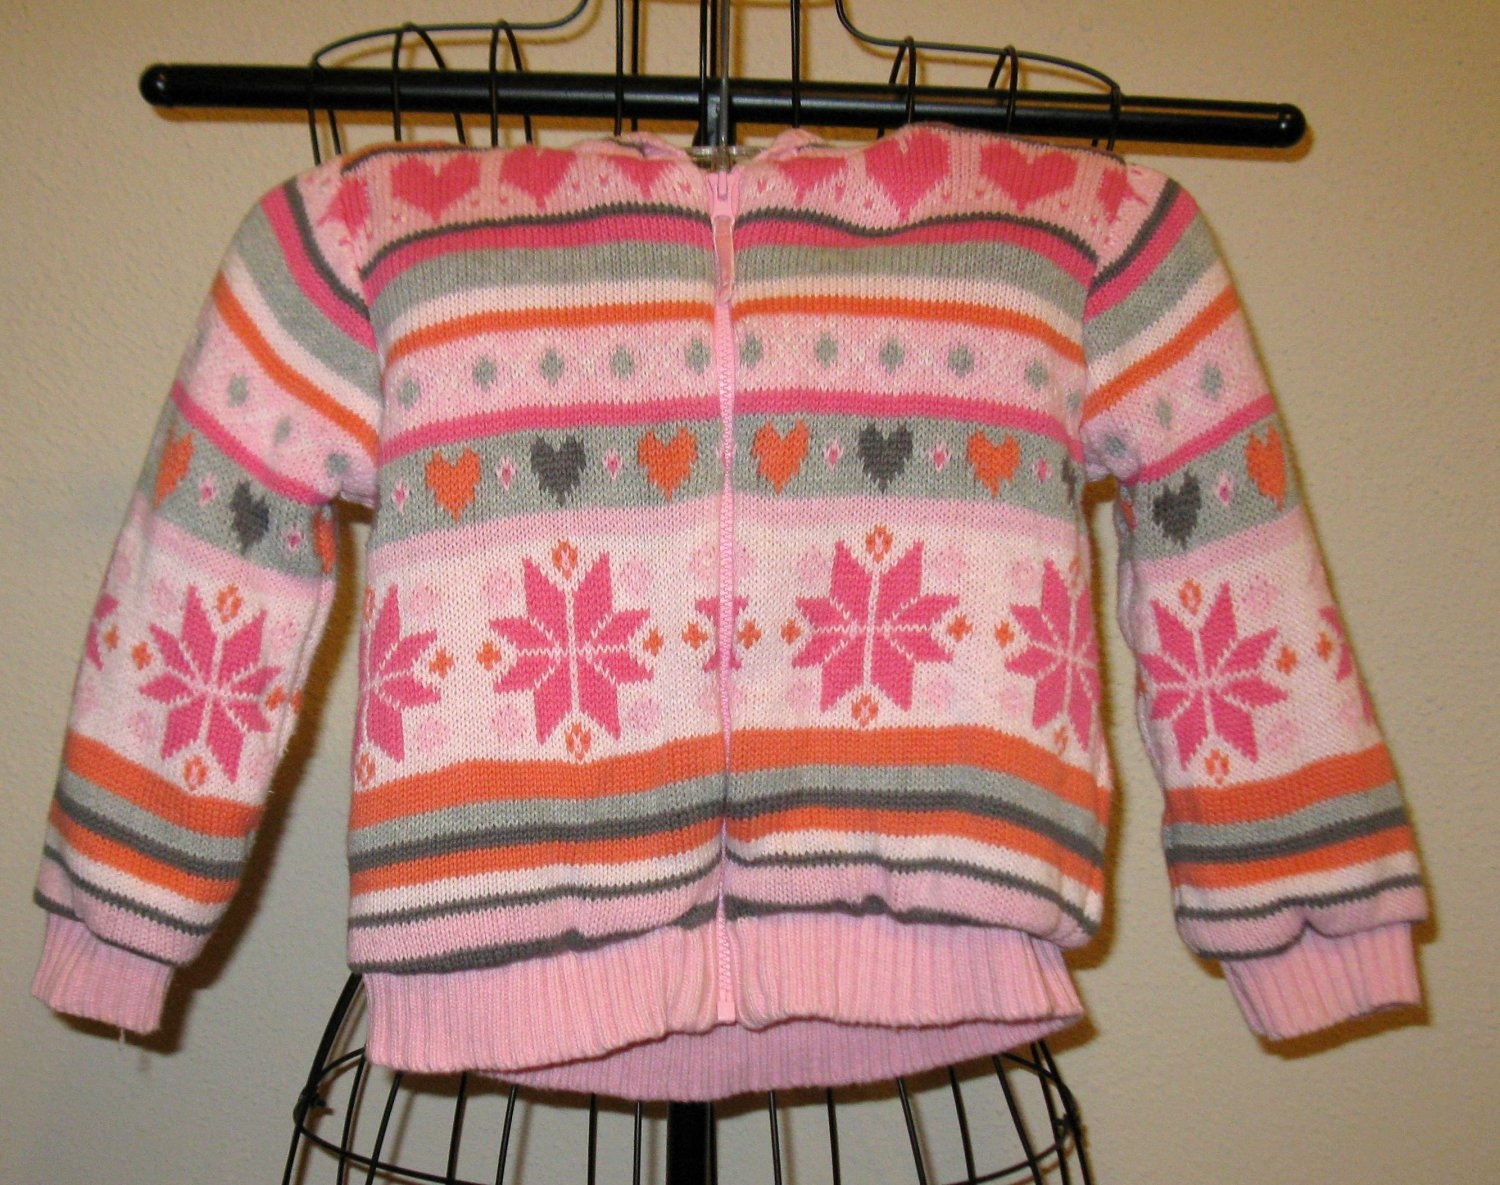 Adorable Pink Sweater Hoodie by Wonder Kid Child Size 3T Nice! #X167